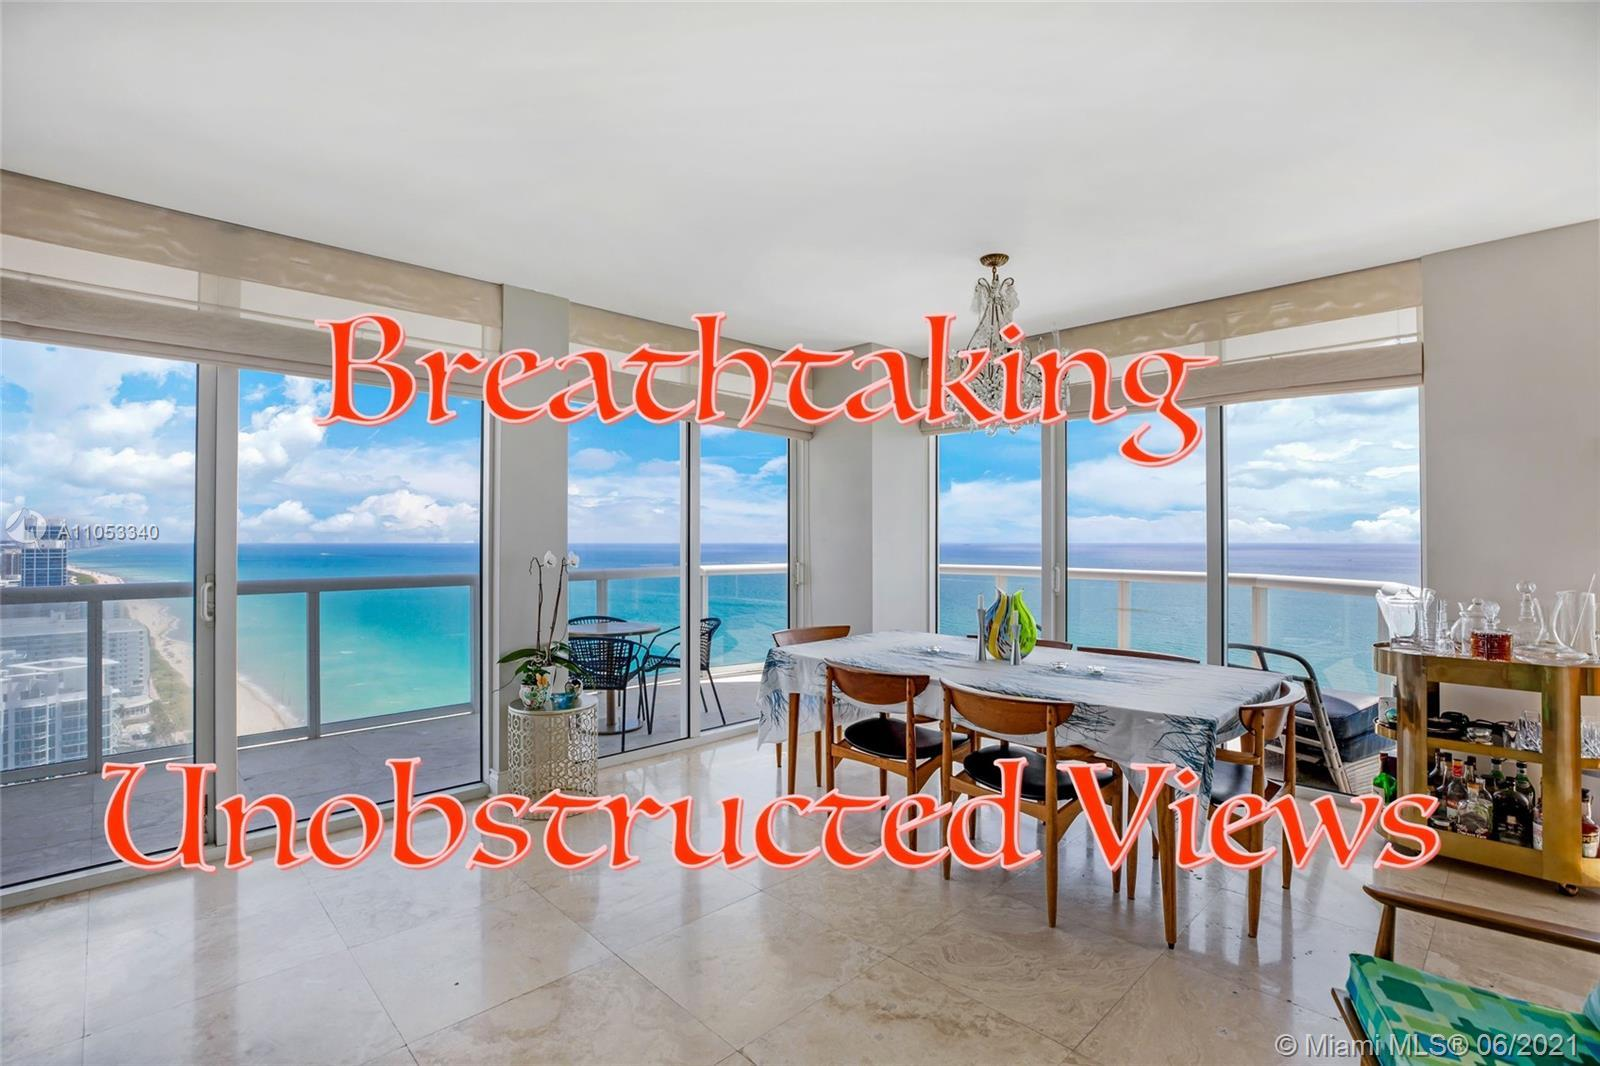 Immaculate three bedrooms with direct views of the Atlantic Ocean. Its expansive balcony further enh